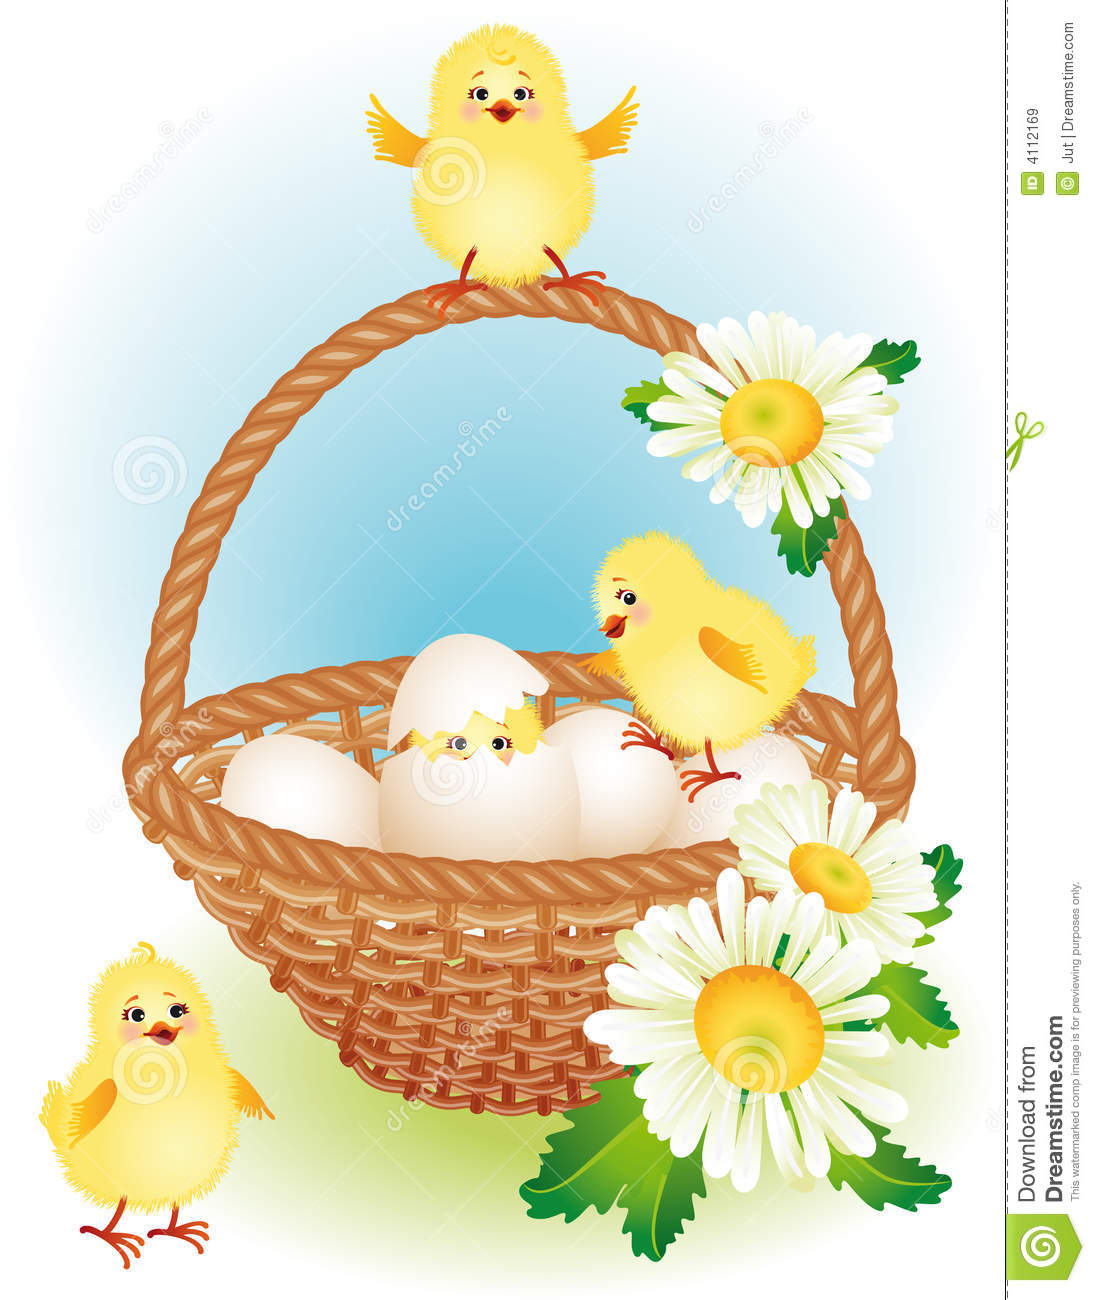 Easter Basket Royalty Free Stock Images Image 4112169